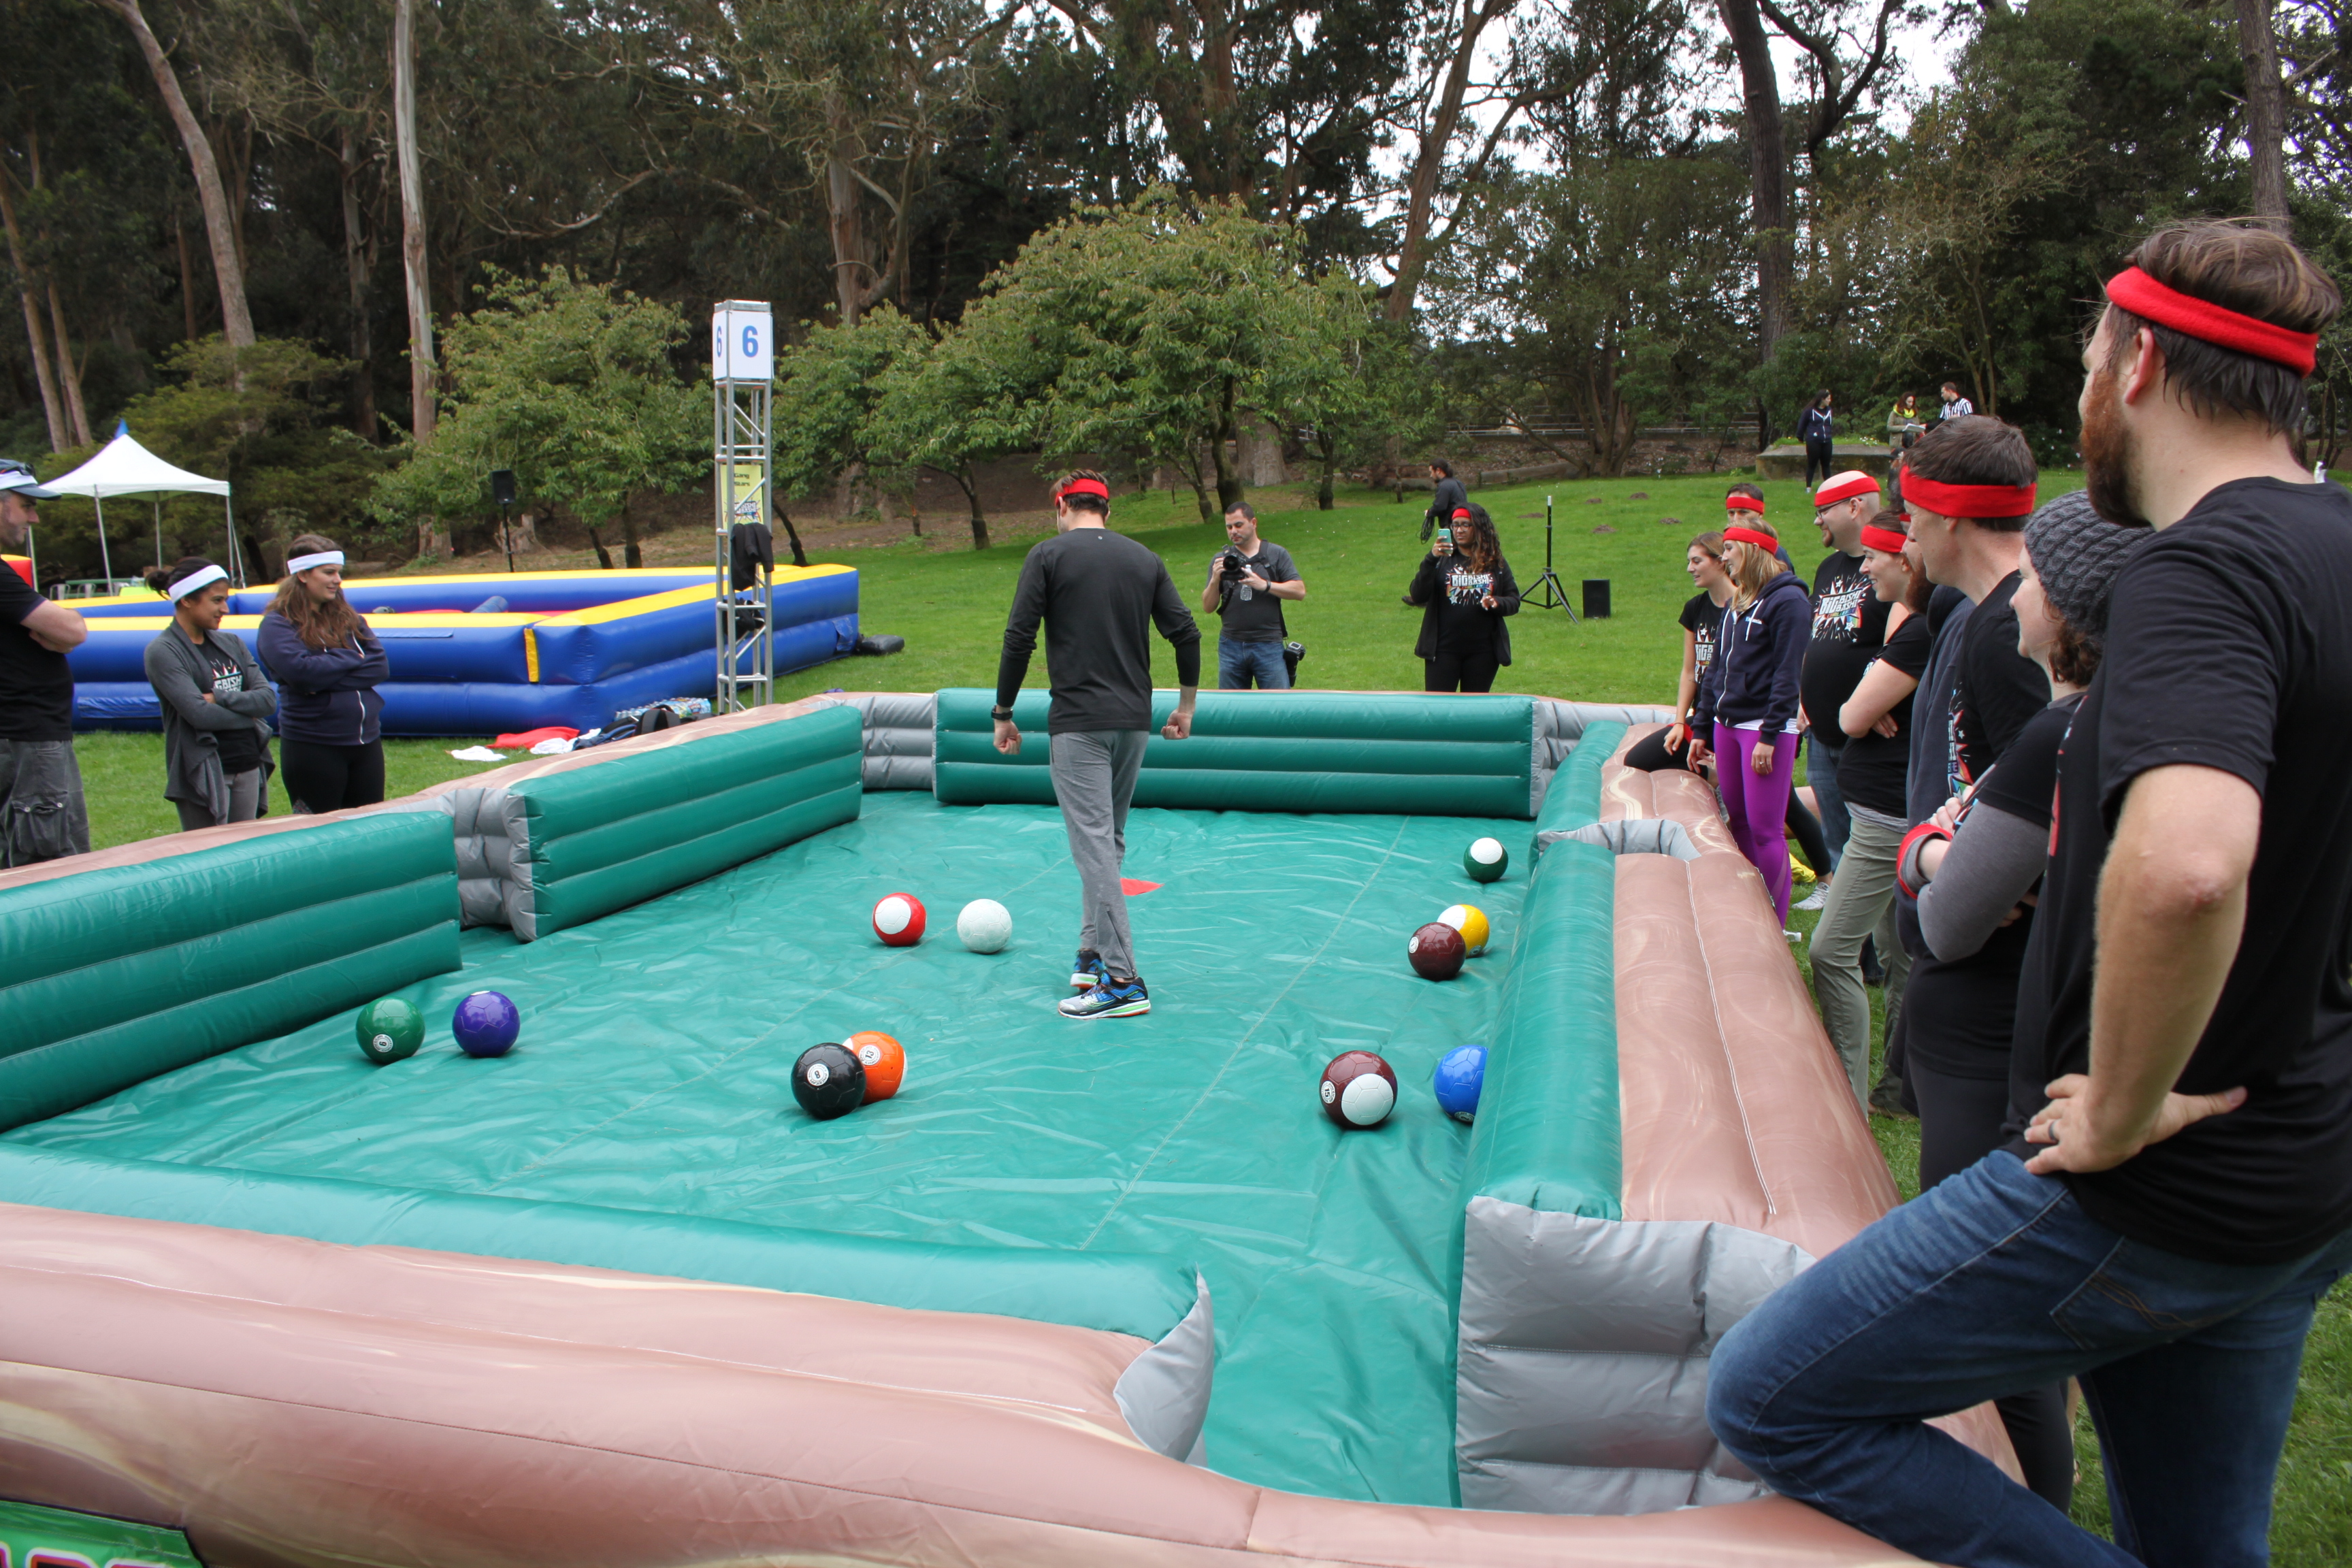 Human Pool Table Rental Bay Area Over Party Rentals - Human pool table